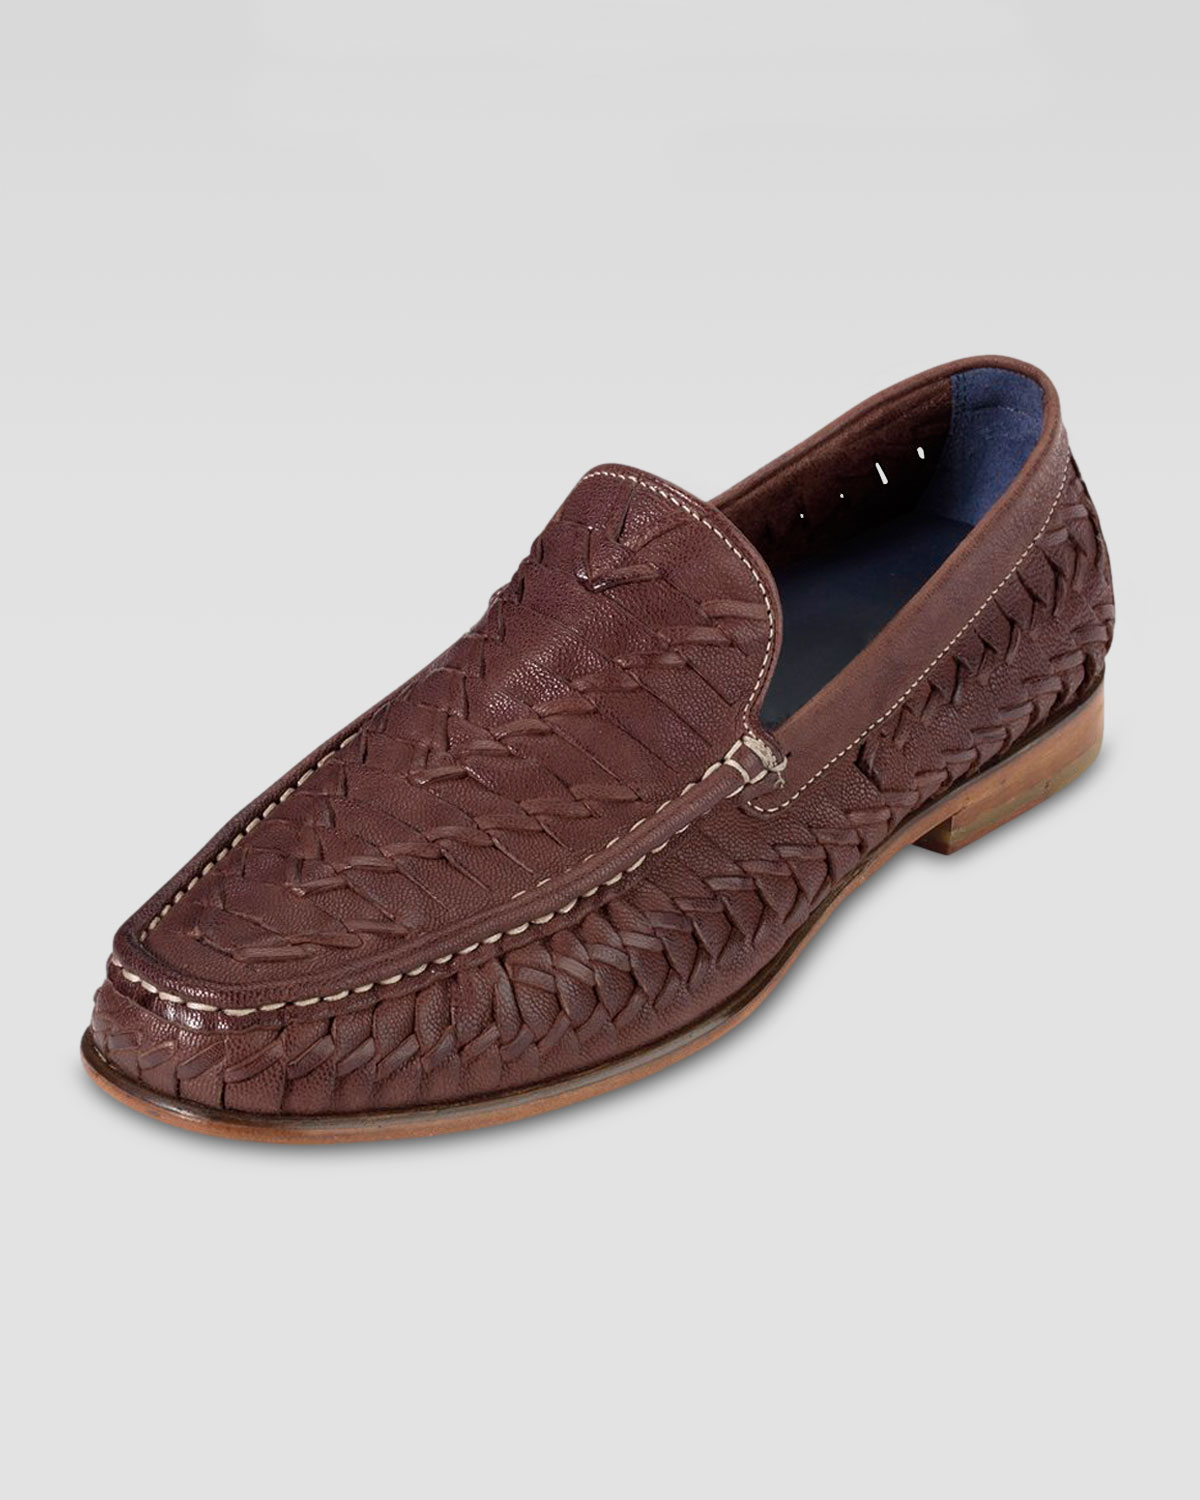 54df46abe42 Lyst - Cole Haan Air Tremont Woven Leather Loafer Brown in Brown for Men